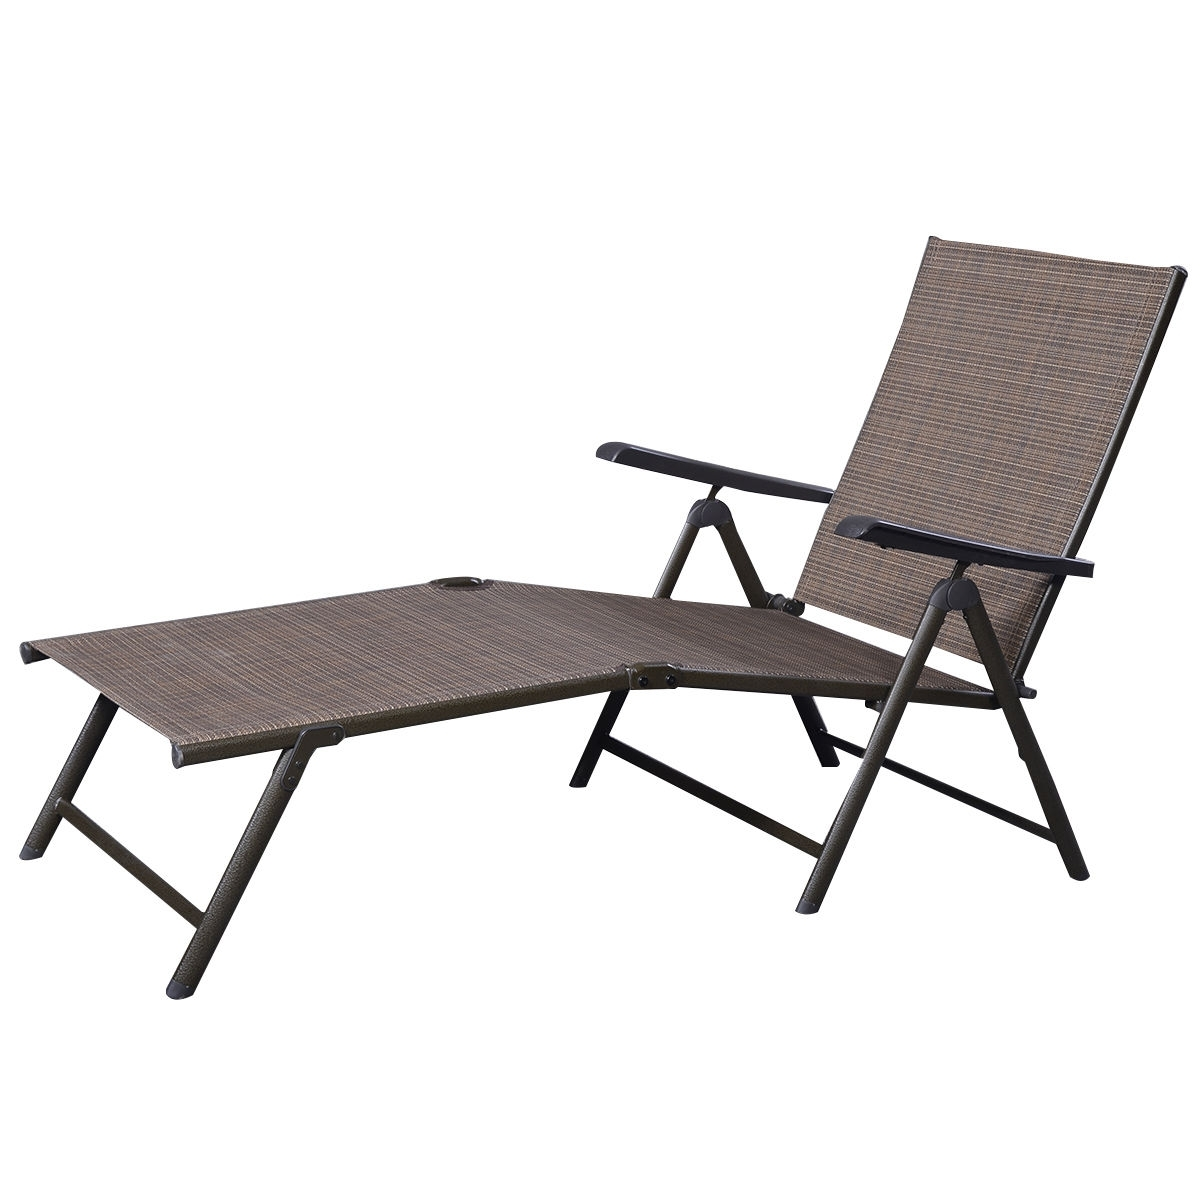 Outdoor Adjustable Chaise Lounge Chair – Sunloungers – Outdoor Throughout Most Popular Chaise Lounge Chairs For Outdoors (View 11 of 15)